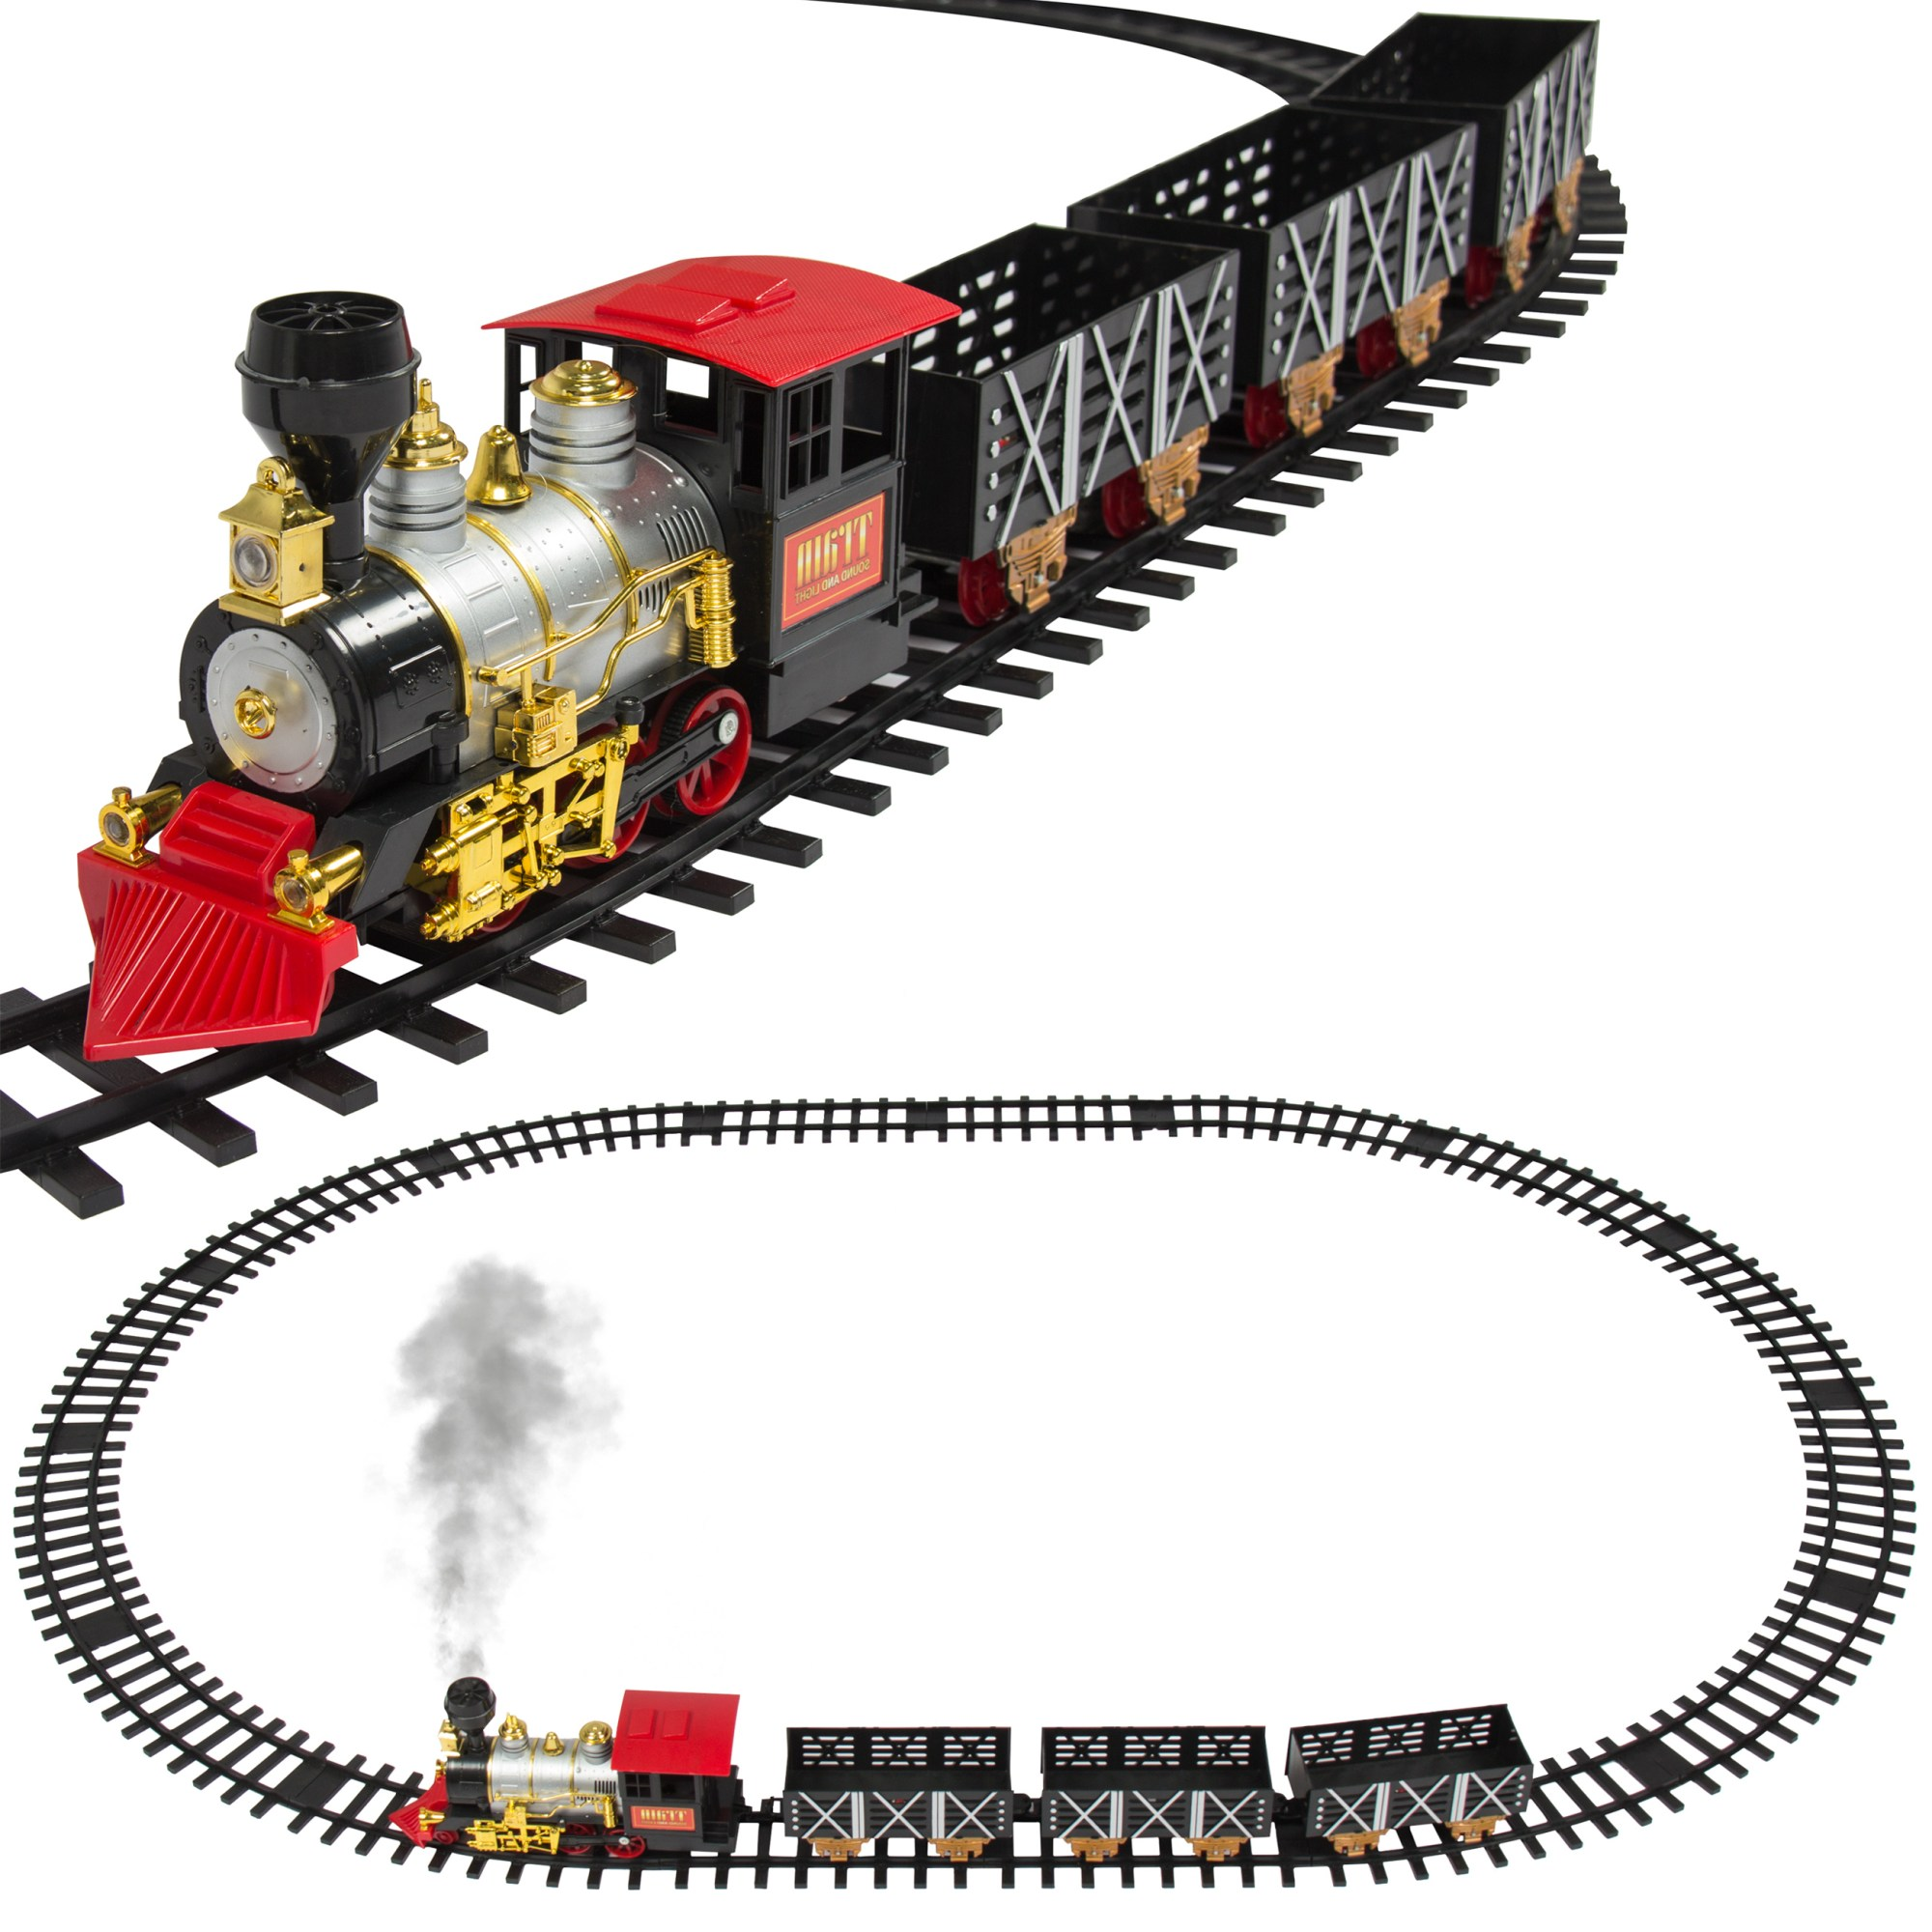 hight resolution of best choice products classic train set for kids with real smoke music and lights battery operated railway car set